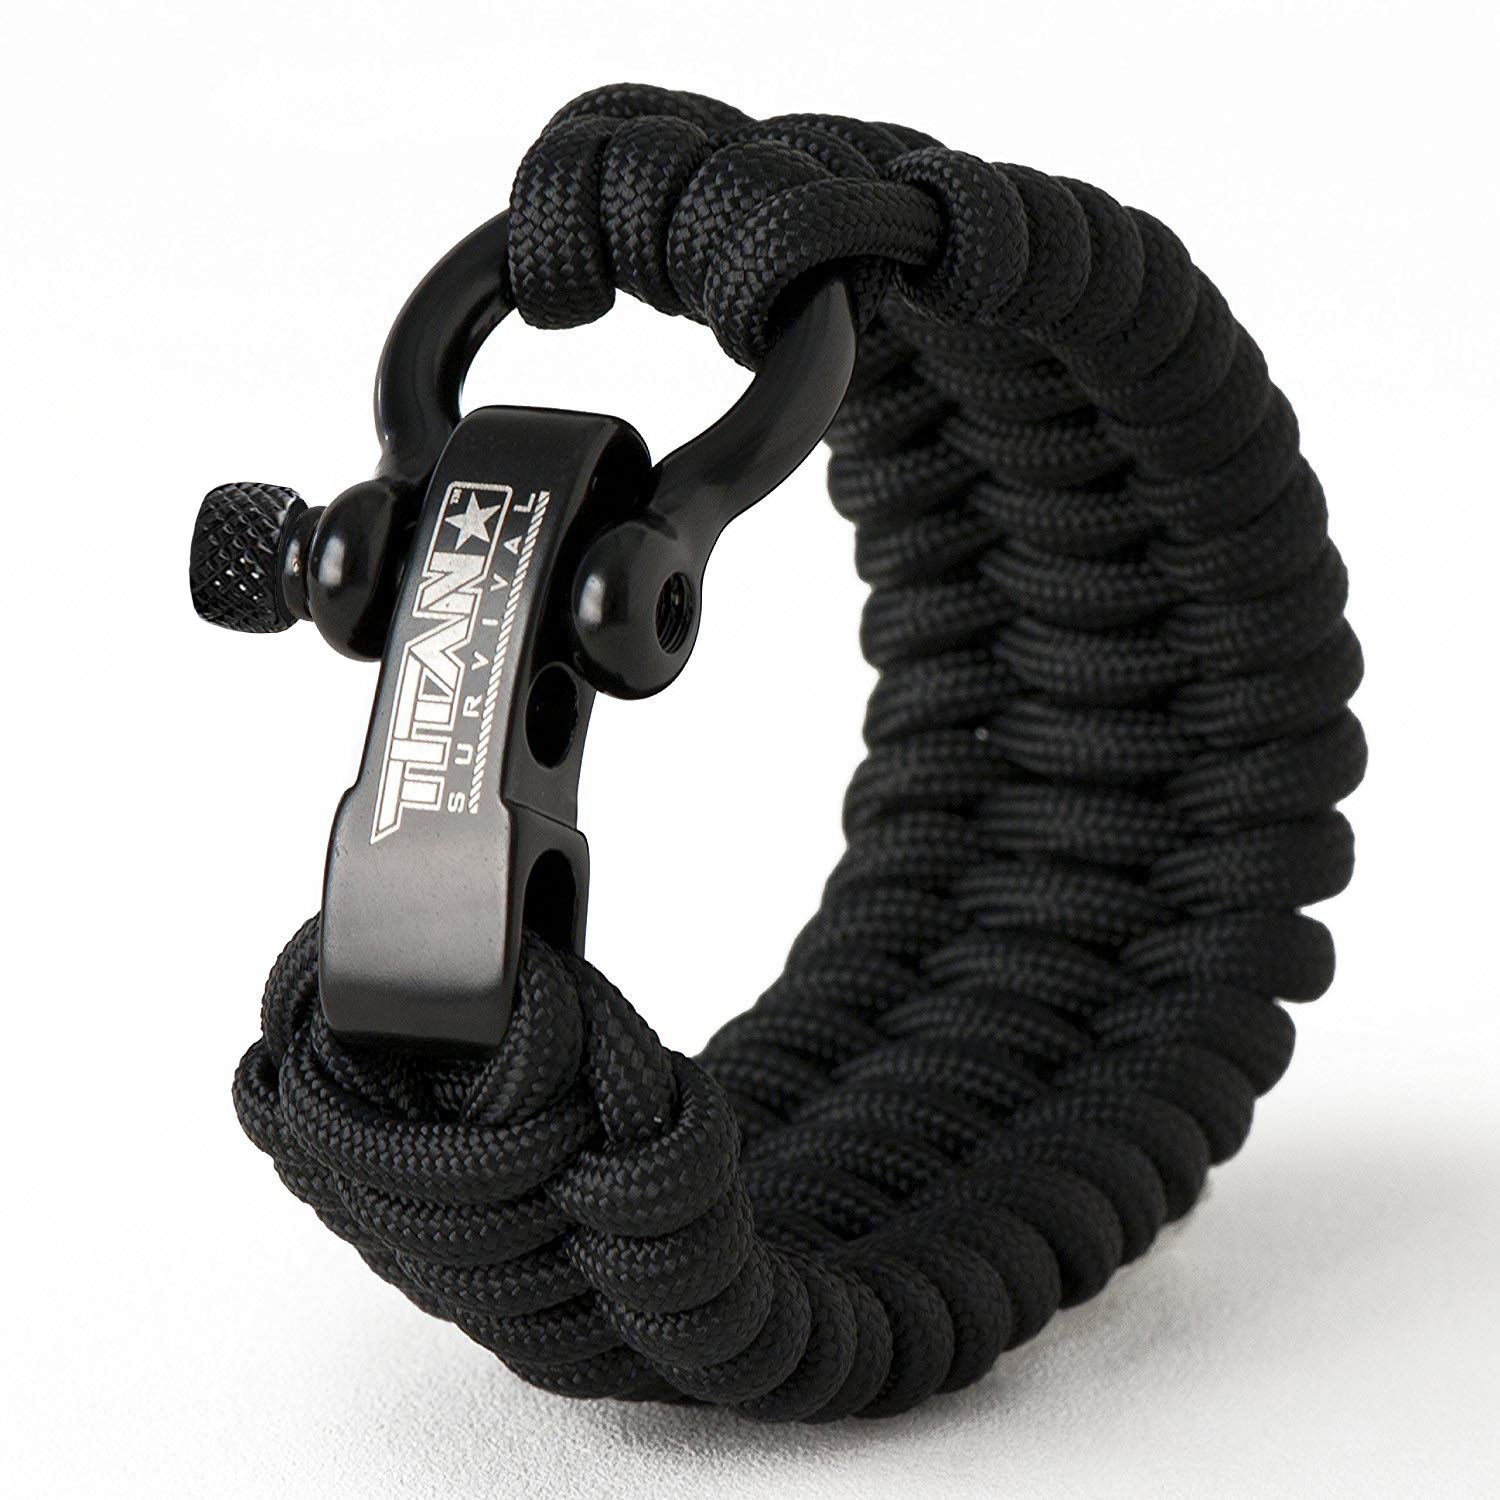 Titan Paracord Survival Bracelet | Black | Small (Fits 6'' - 7'' Wrist) | Made with Authentic Patented SurvivorCord (550 Paracord, Fishing line, Snare Wire, and Waxed Jute for Fires).